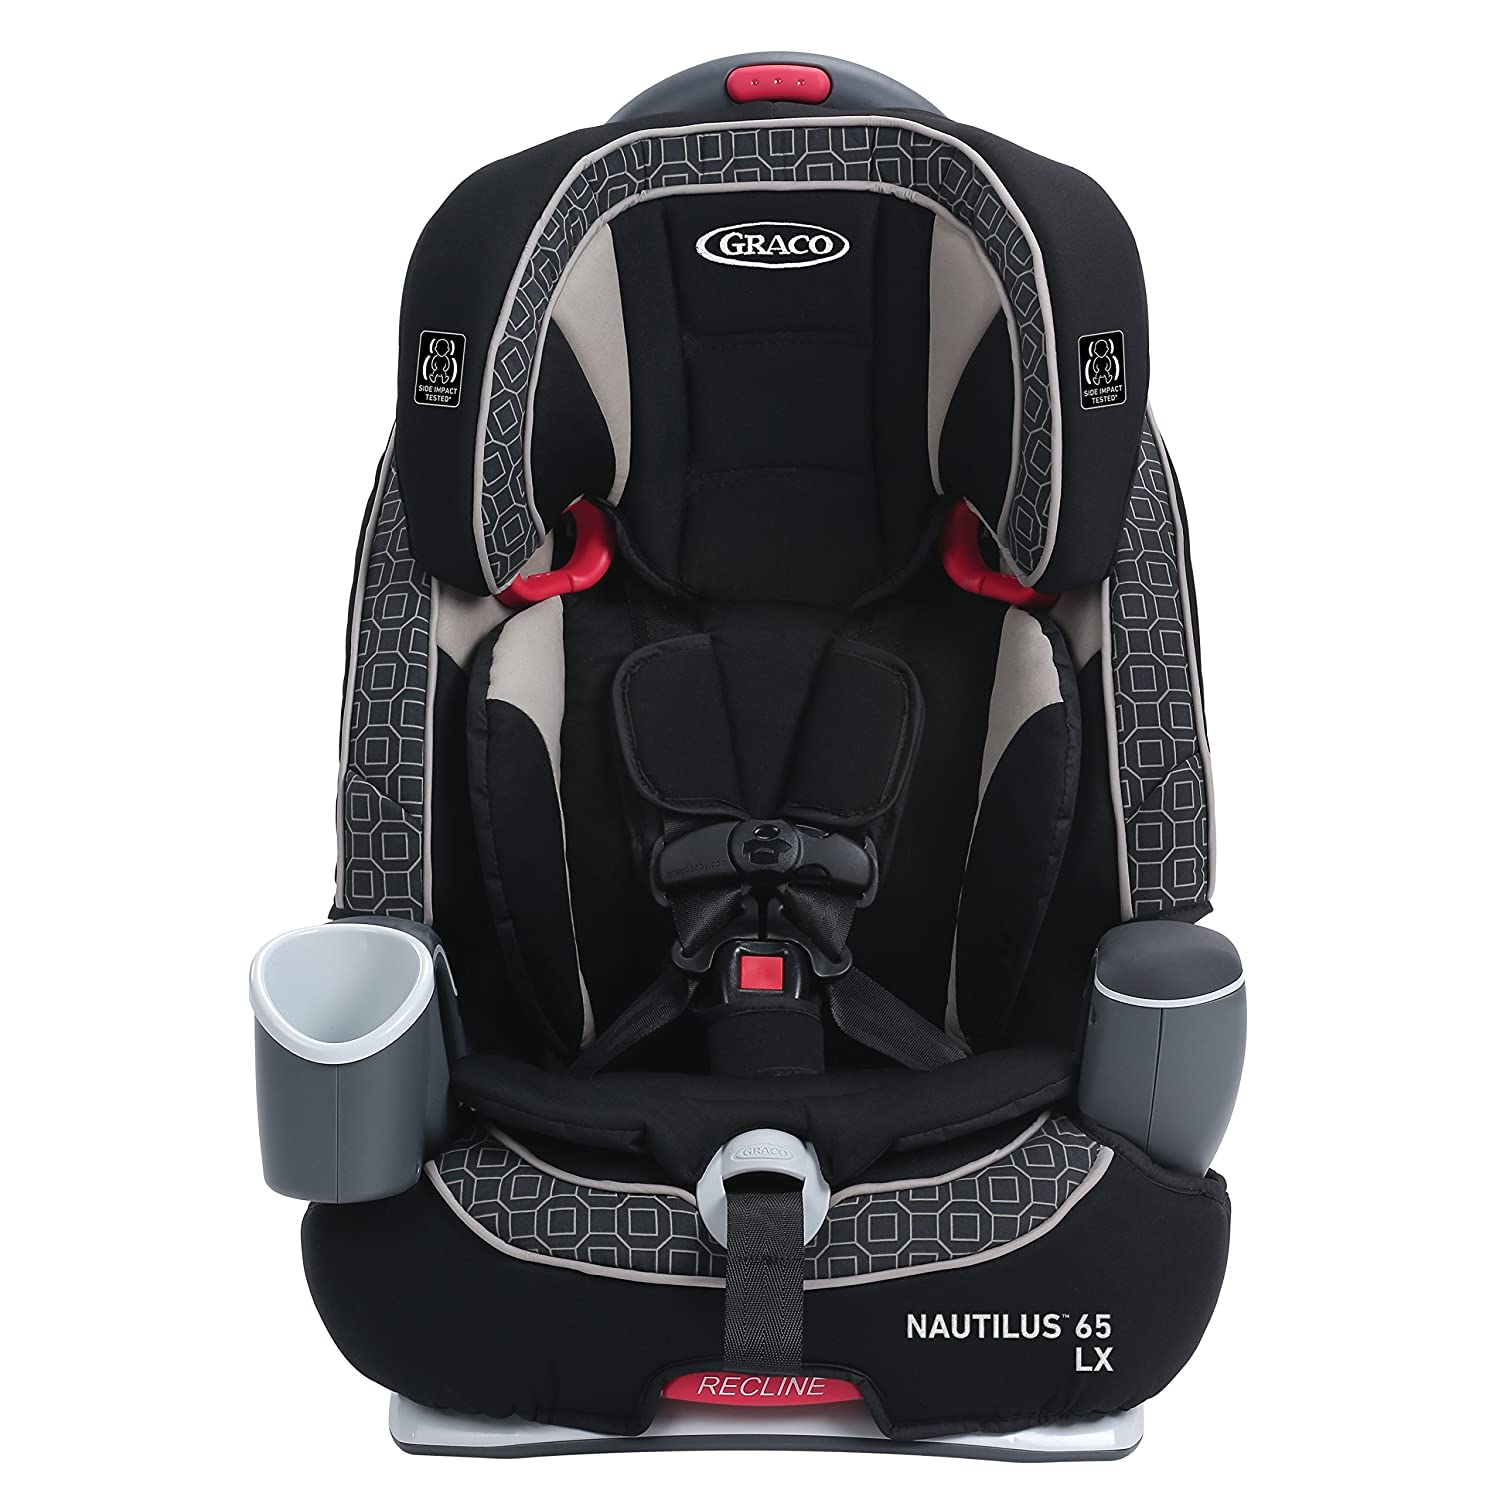 amazon com graco nautilus 65 lx 3 in 1 harness booster car seat rh amazon com Graco 3 in 1 Car Seat Stroller Britax Car Seats